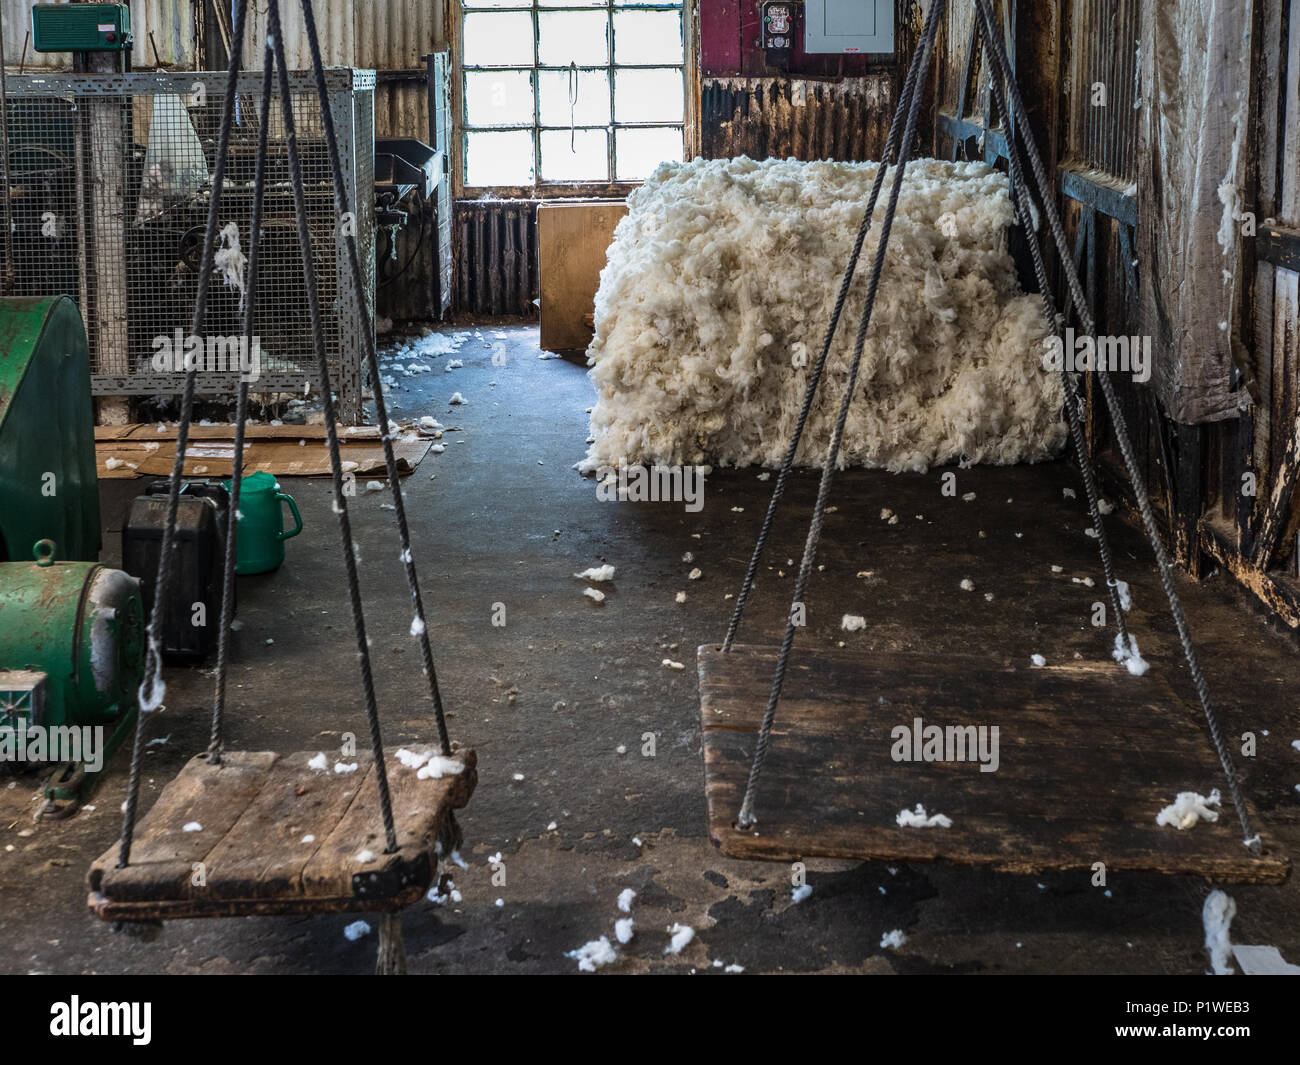 Trefriw Woollen Mills in N.Wales, one of the last remaining woollen mills still in production in Wales. Known for traditional double-weave blankets. - Stock Image